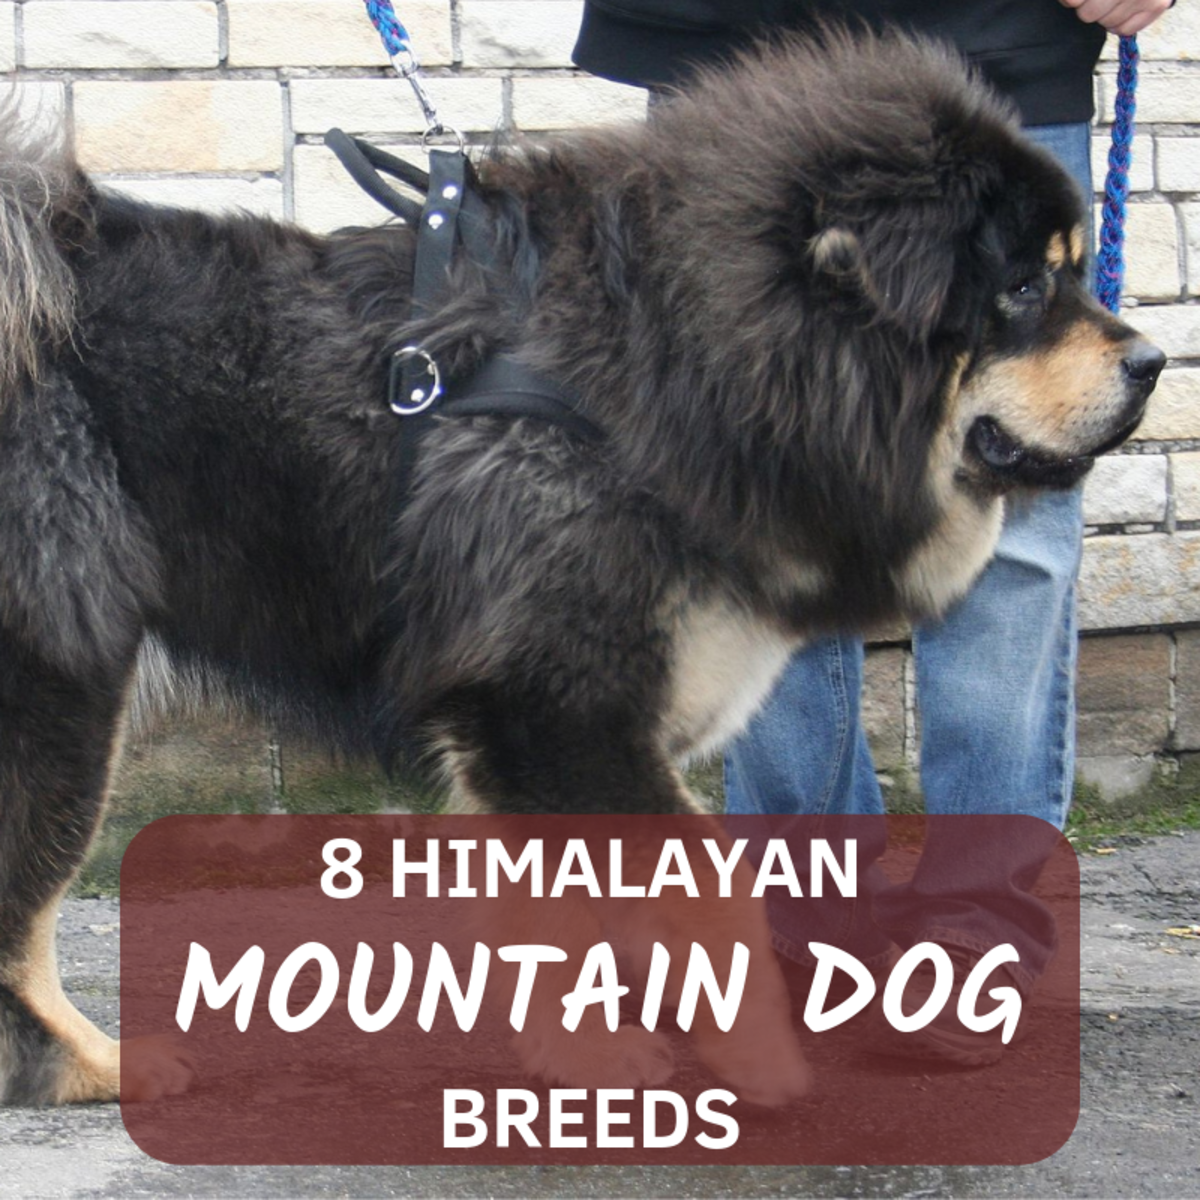 The Himalayan mountain range is is home to some of the largest, fiercest and most loyal dog breeds in the world.